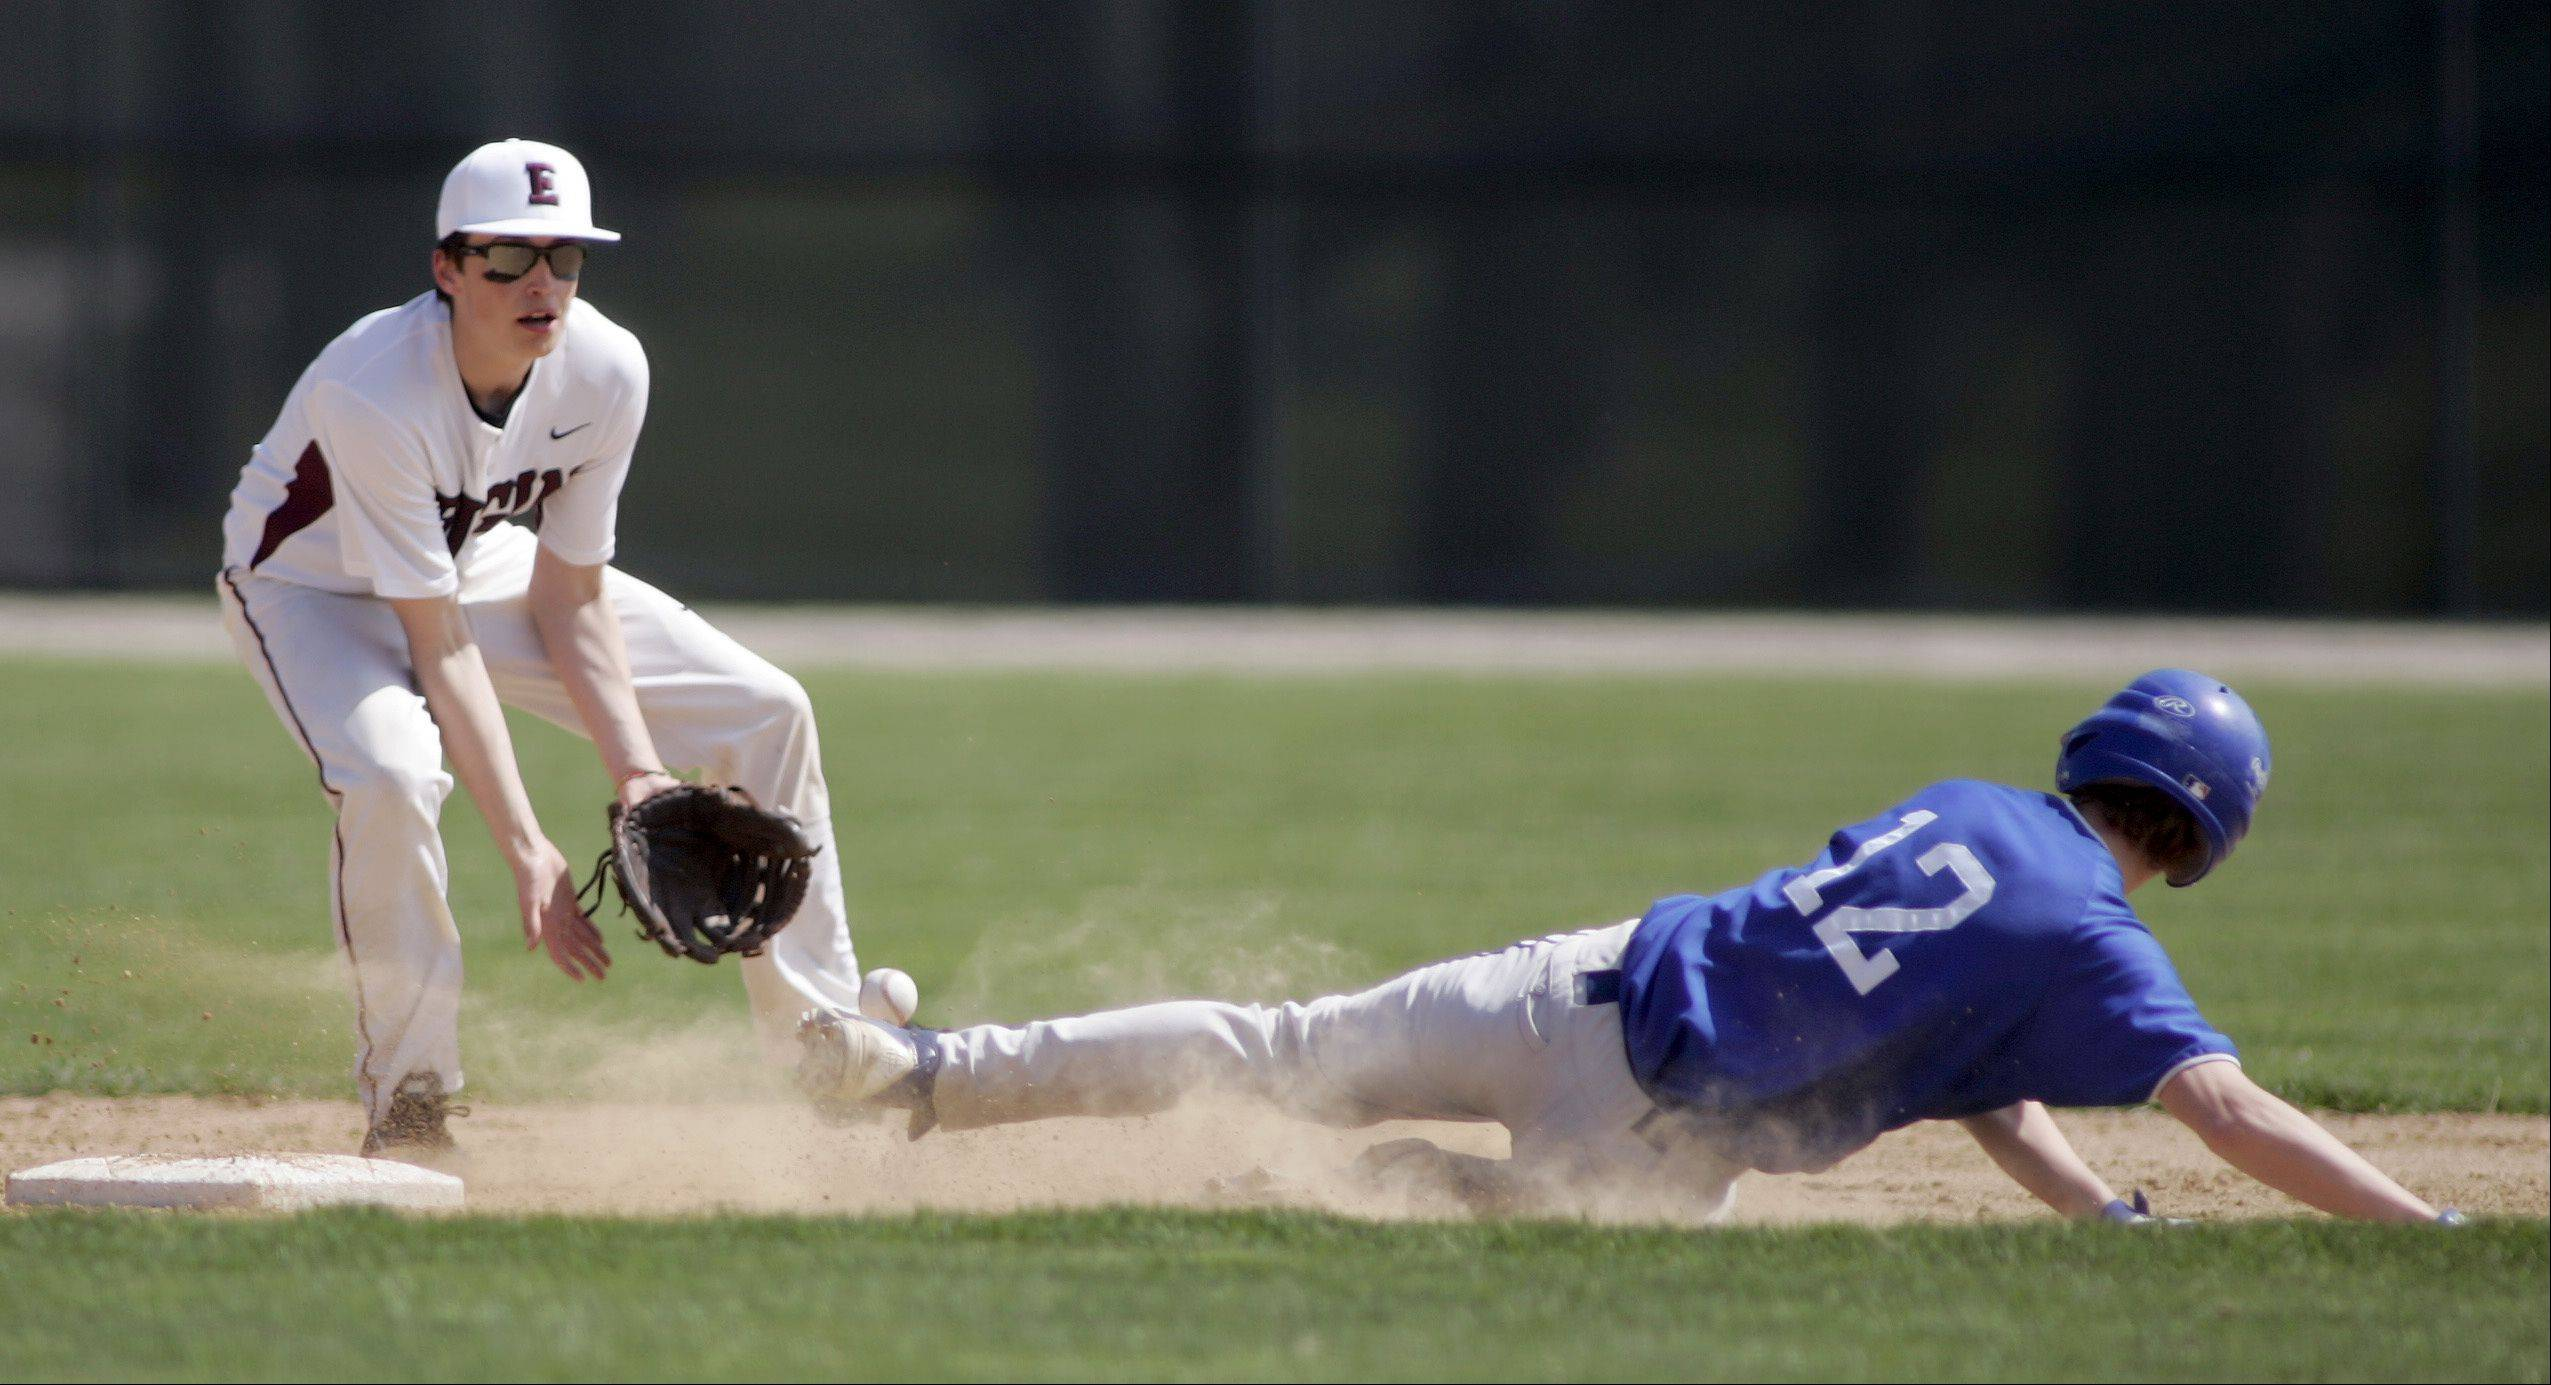 Elgin's Alex Buttell tries to pull in the throw to second as Larkin's Jack McCracken slides in safely Saturday at Trout Park.